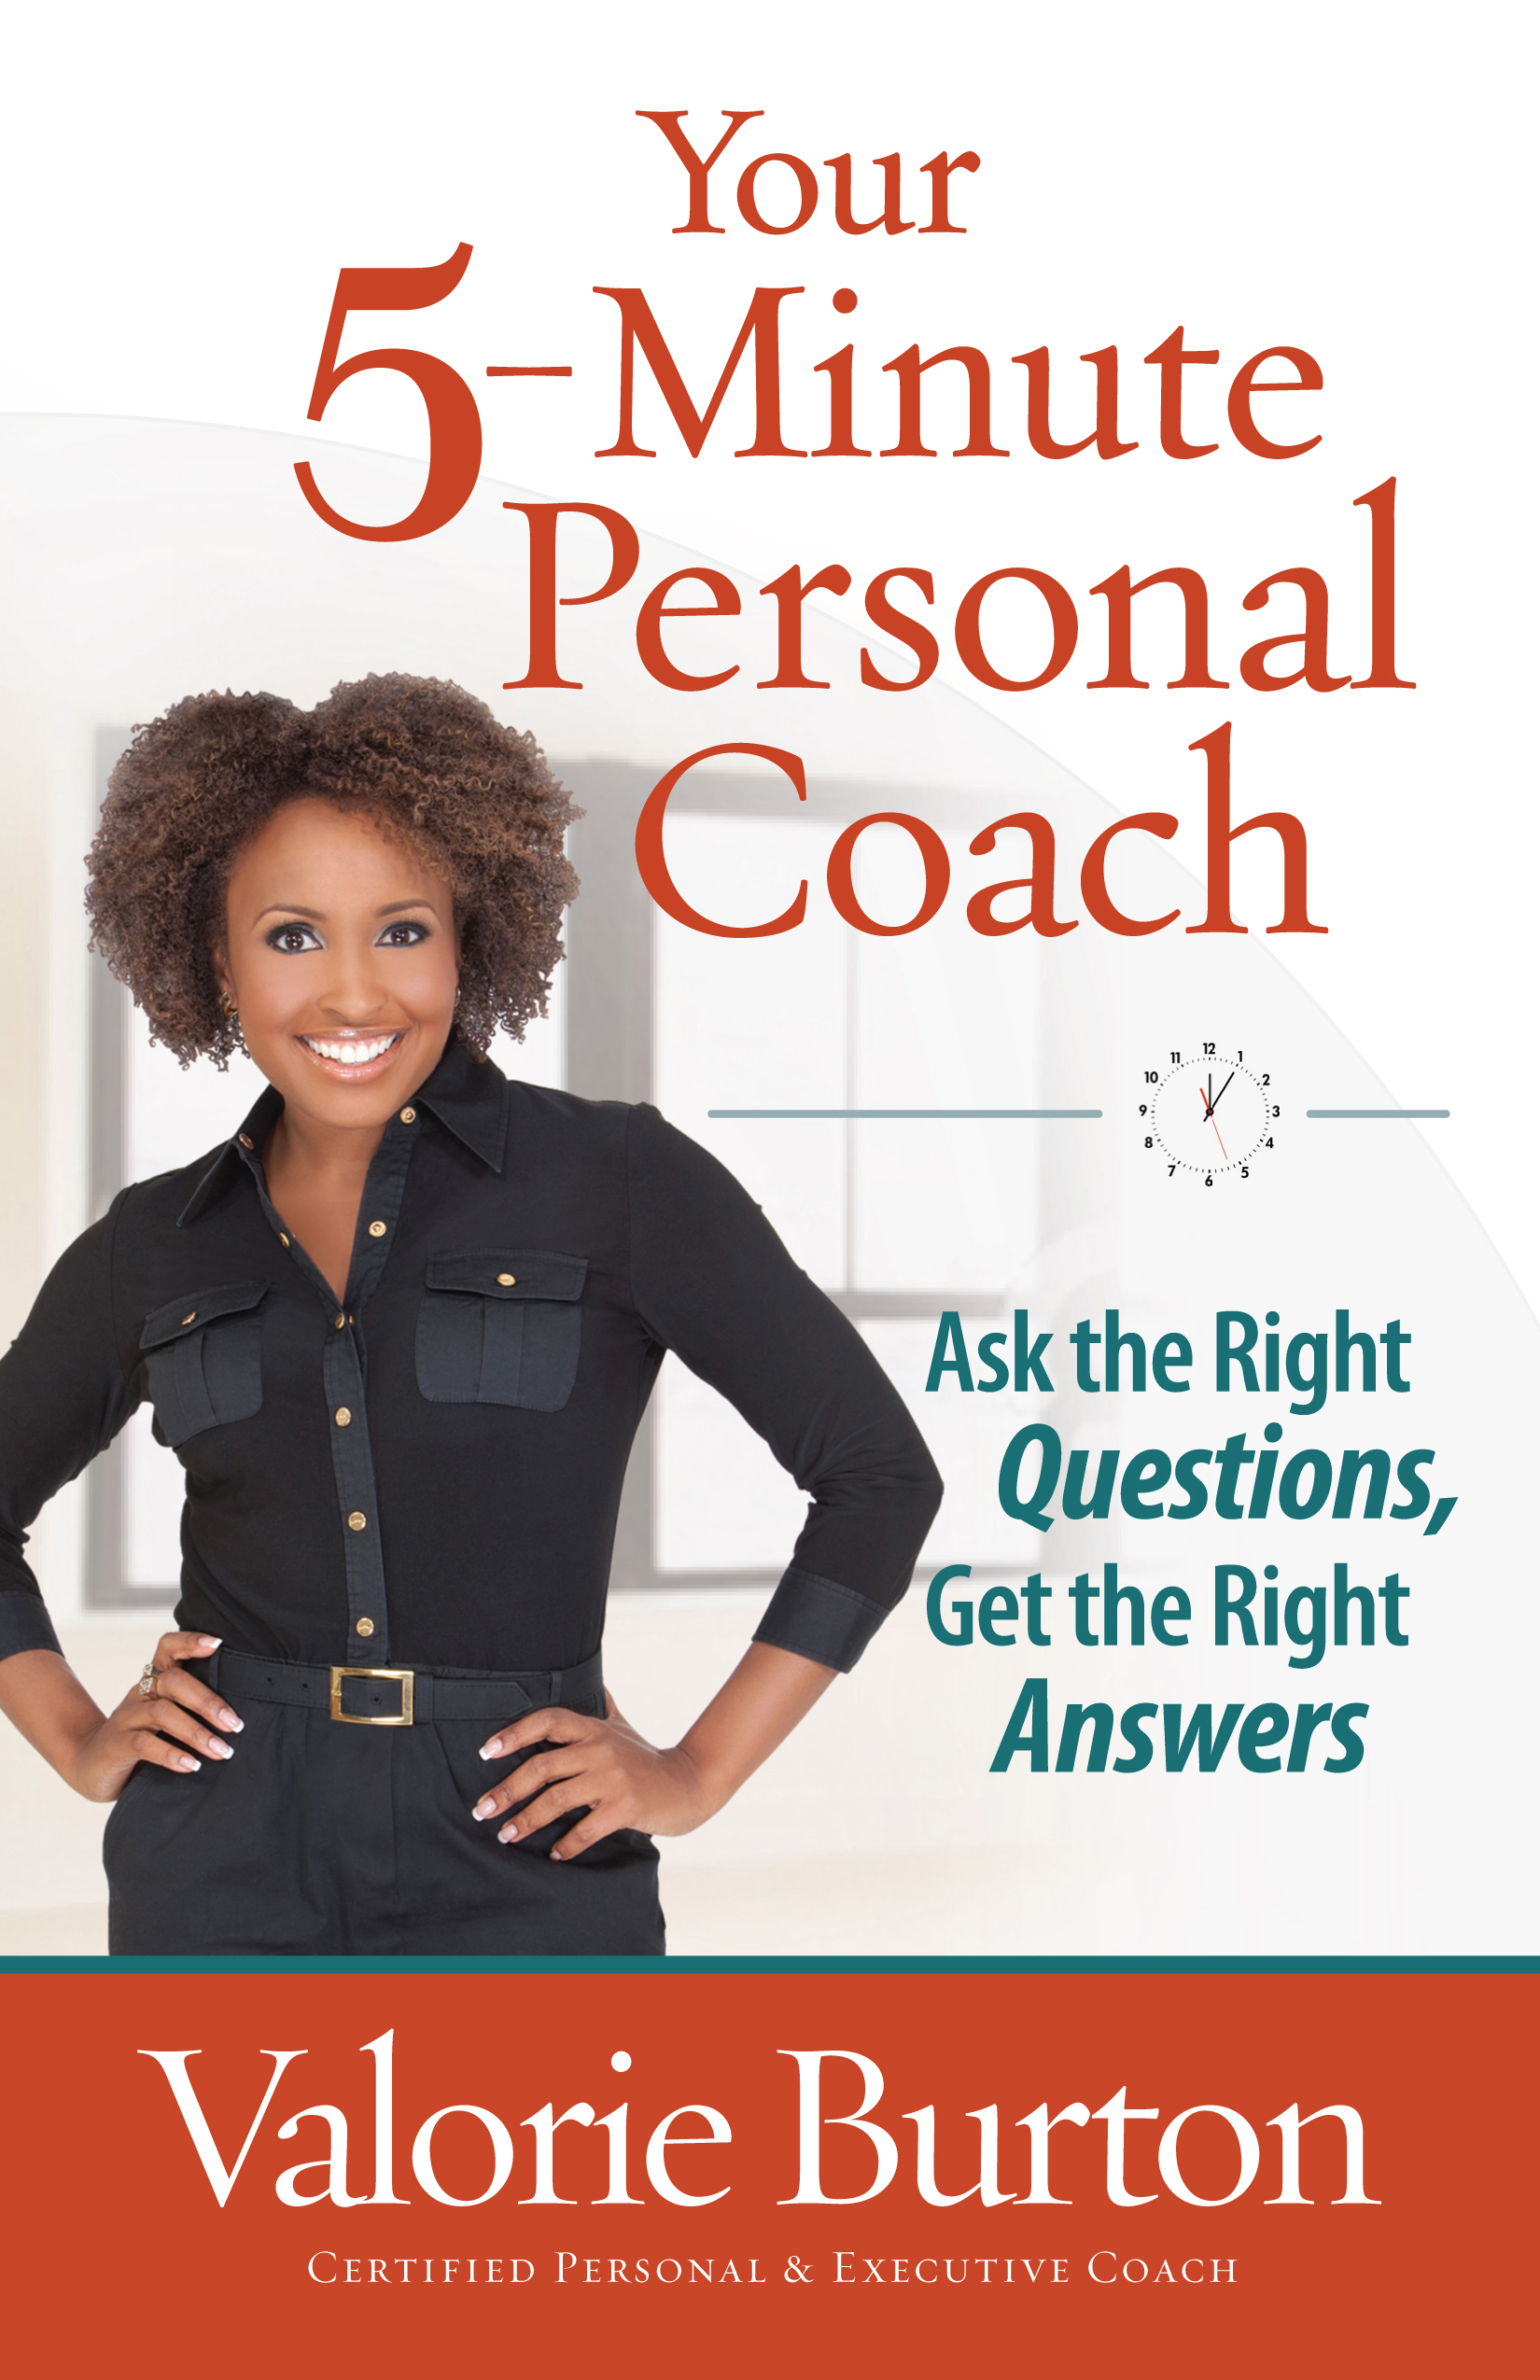 Your 5-Minute Personal Coach By: Valorie Burton